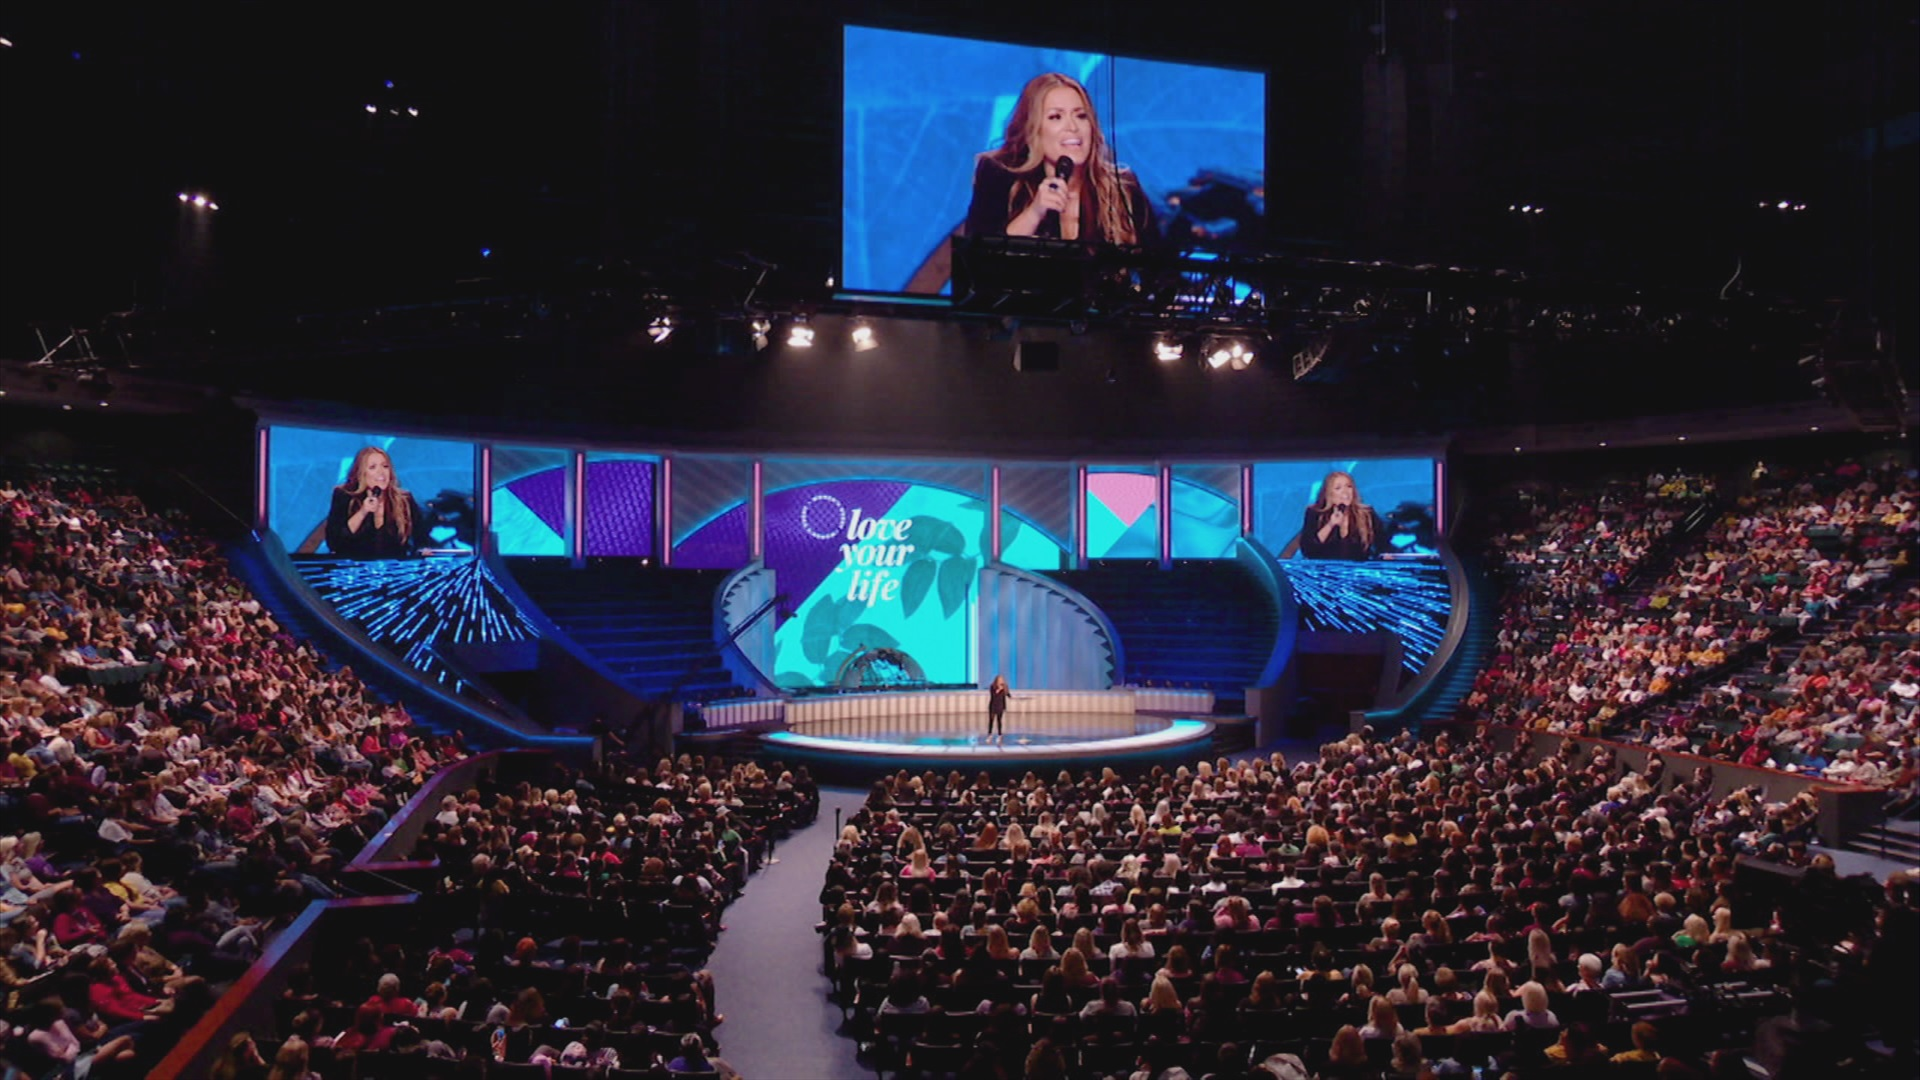 Praise | Love Your Life: A Night for Women | January 28, 2020